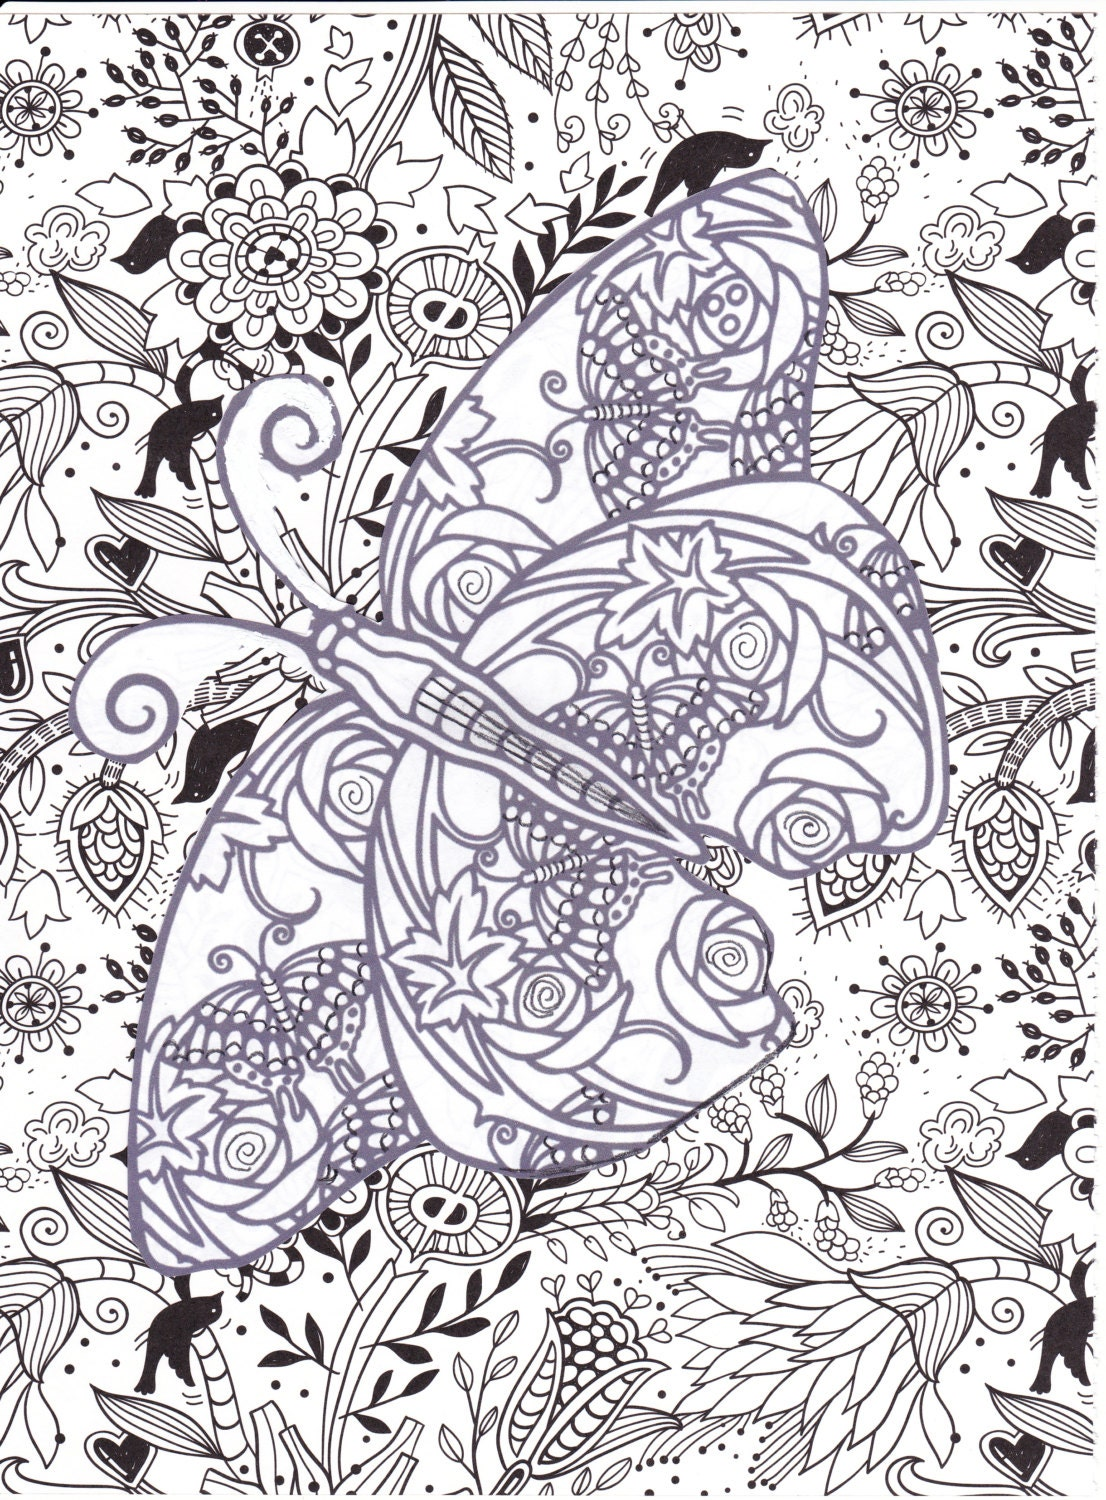 Adult / Advanced Coloring Page 8 X 10 Instant jpeg Download.